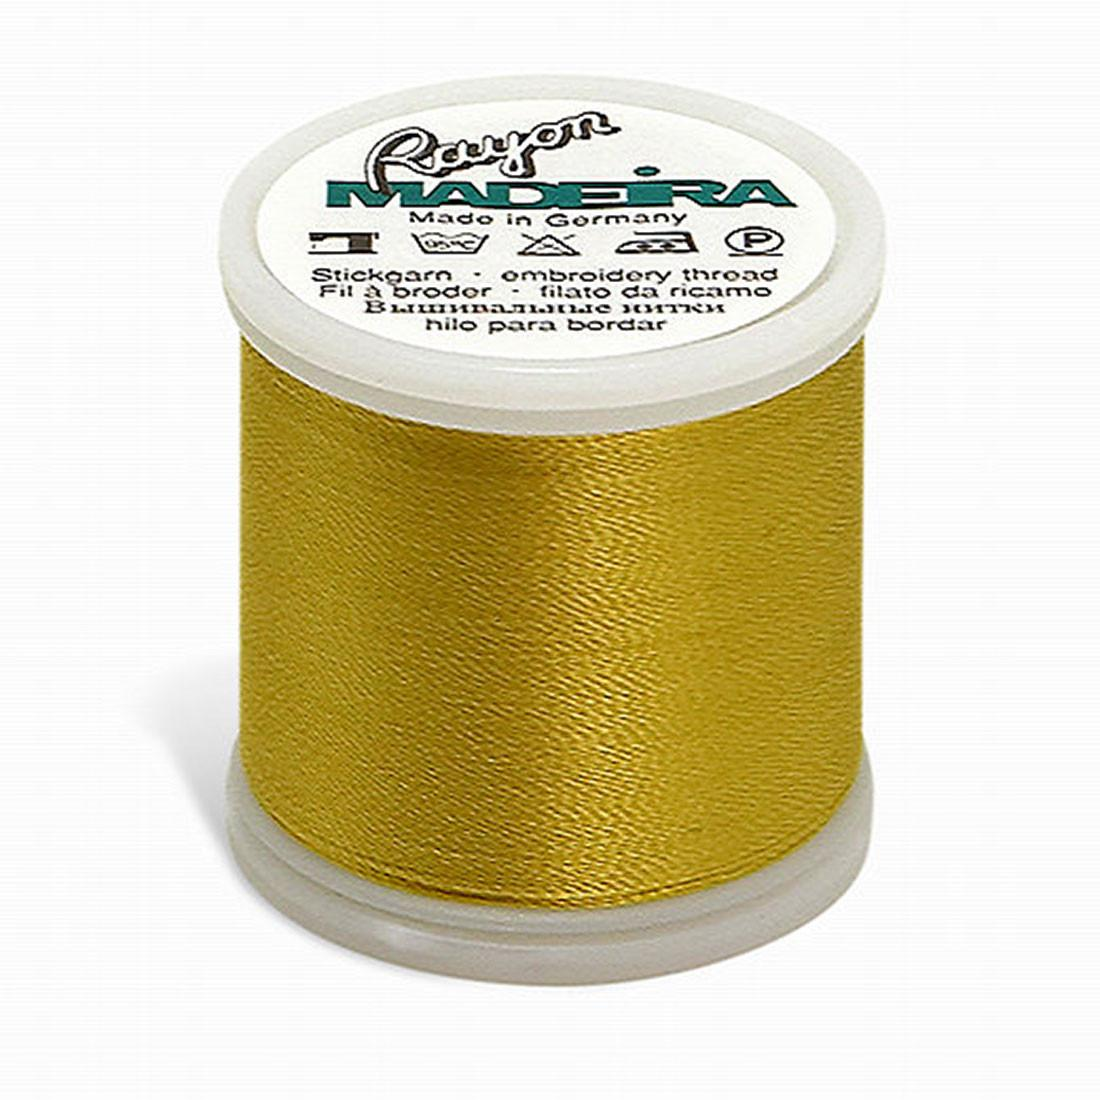 Madeira Rayon - Machine Embroidery Thread - 220YD Spool - Spark Gold